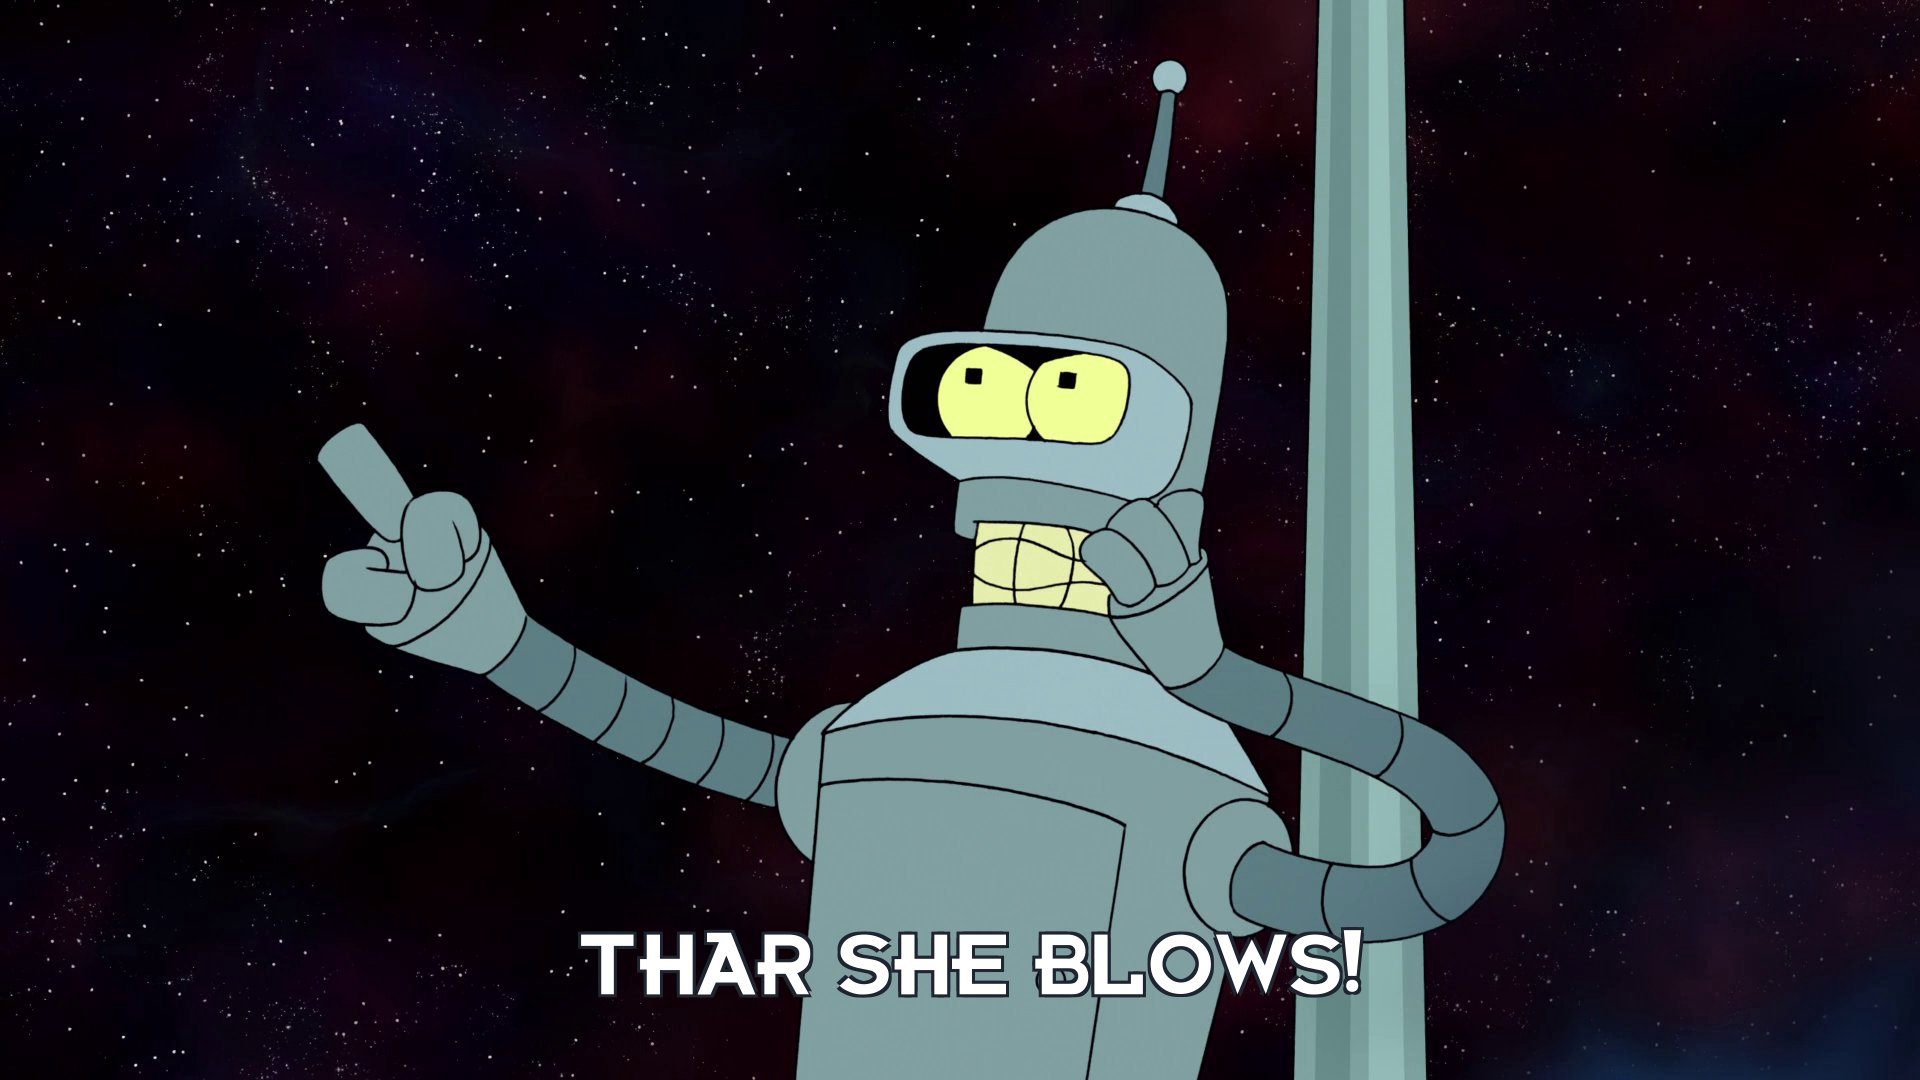 Bender Bending Rodriguez: Thar she blows!